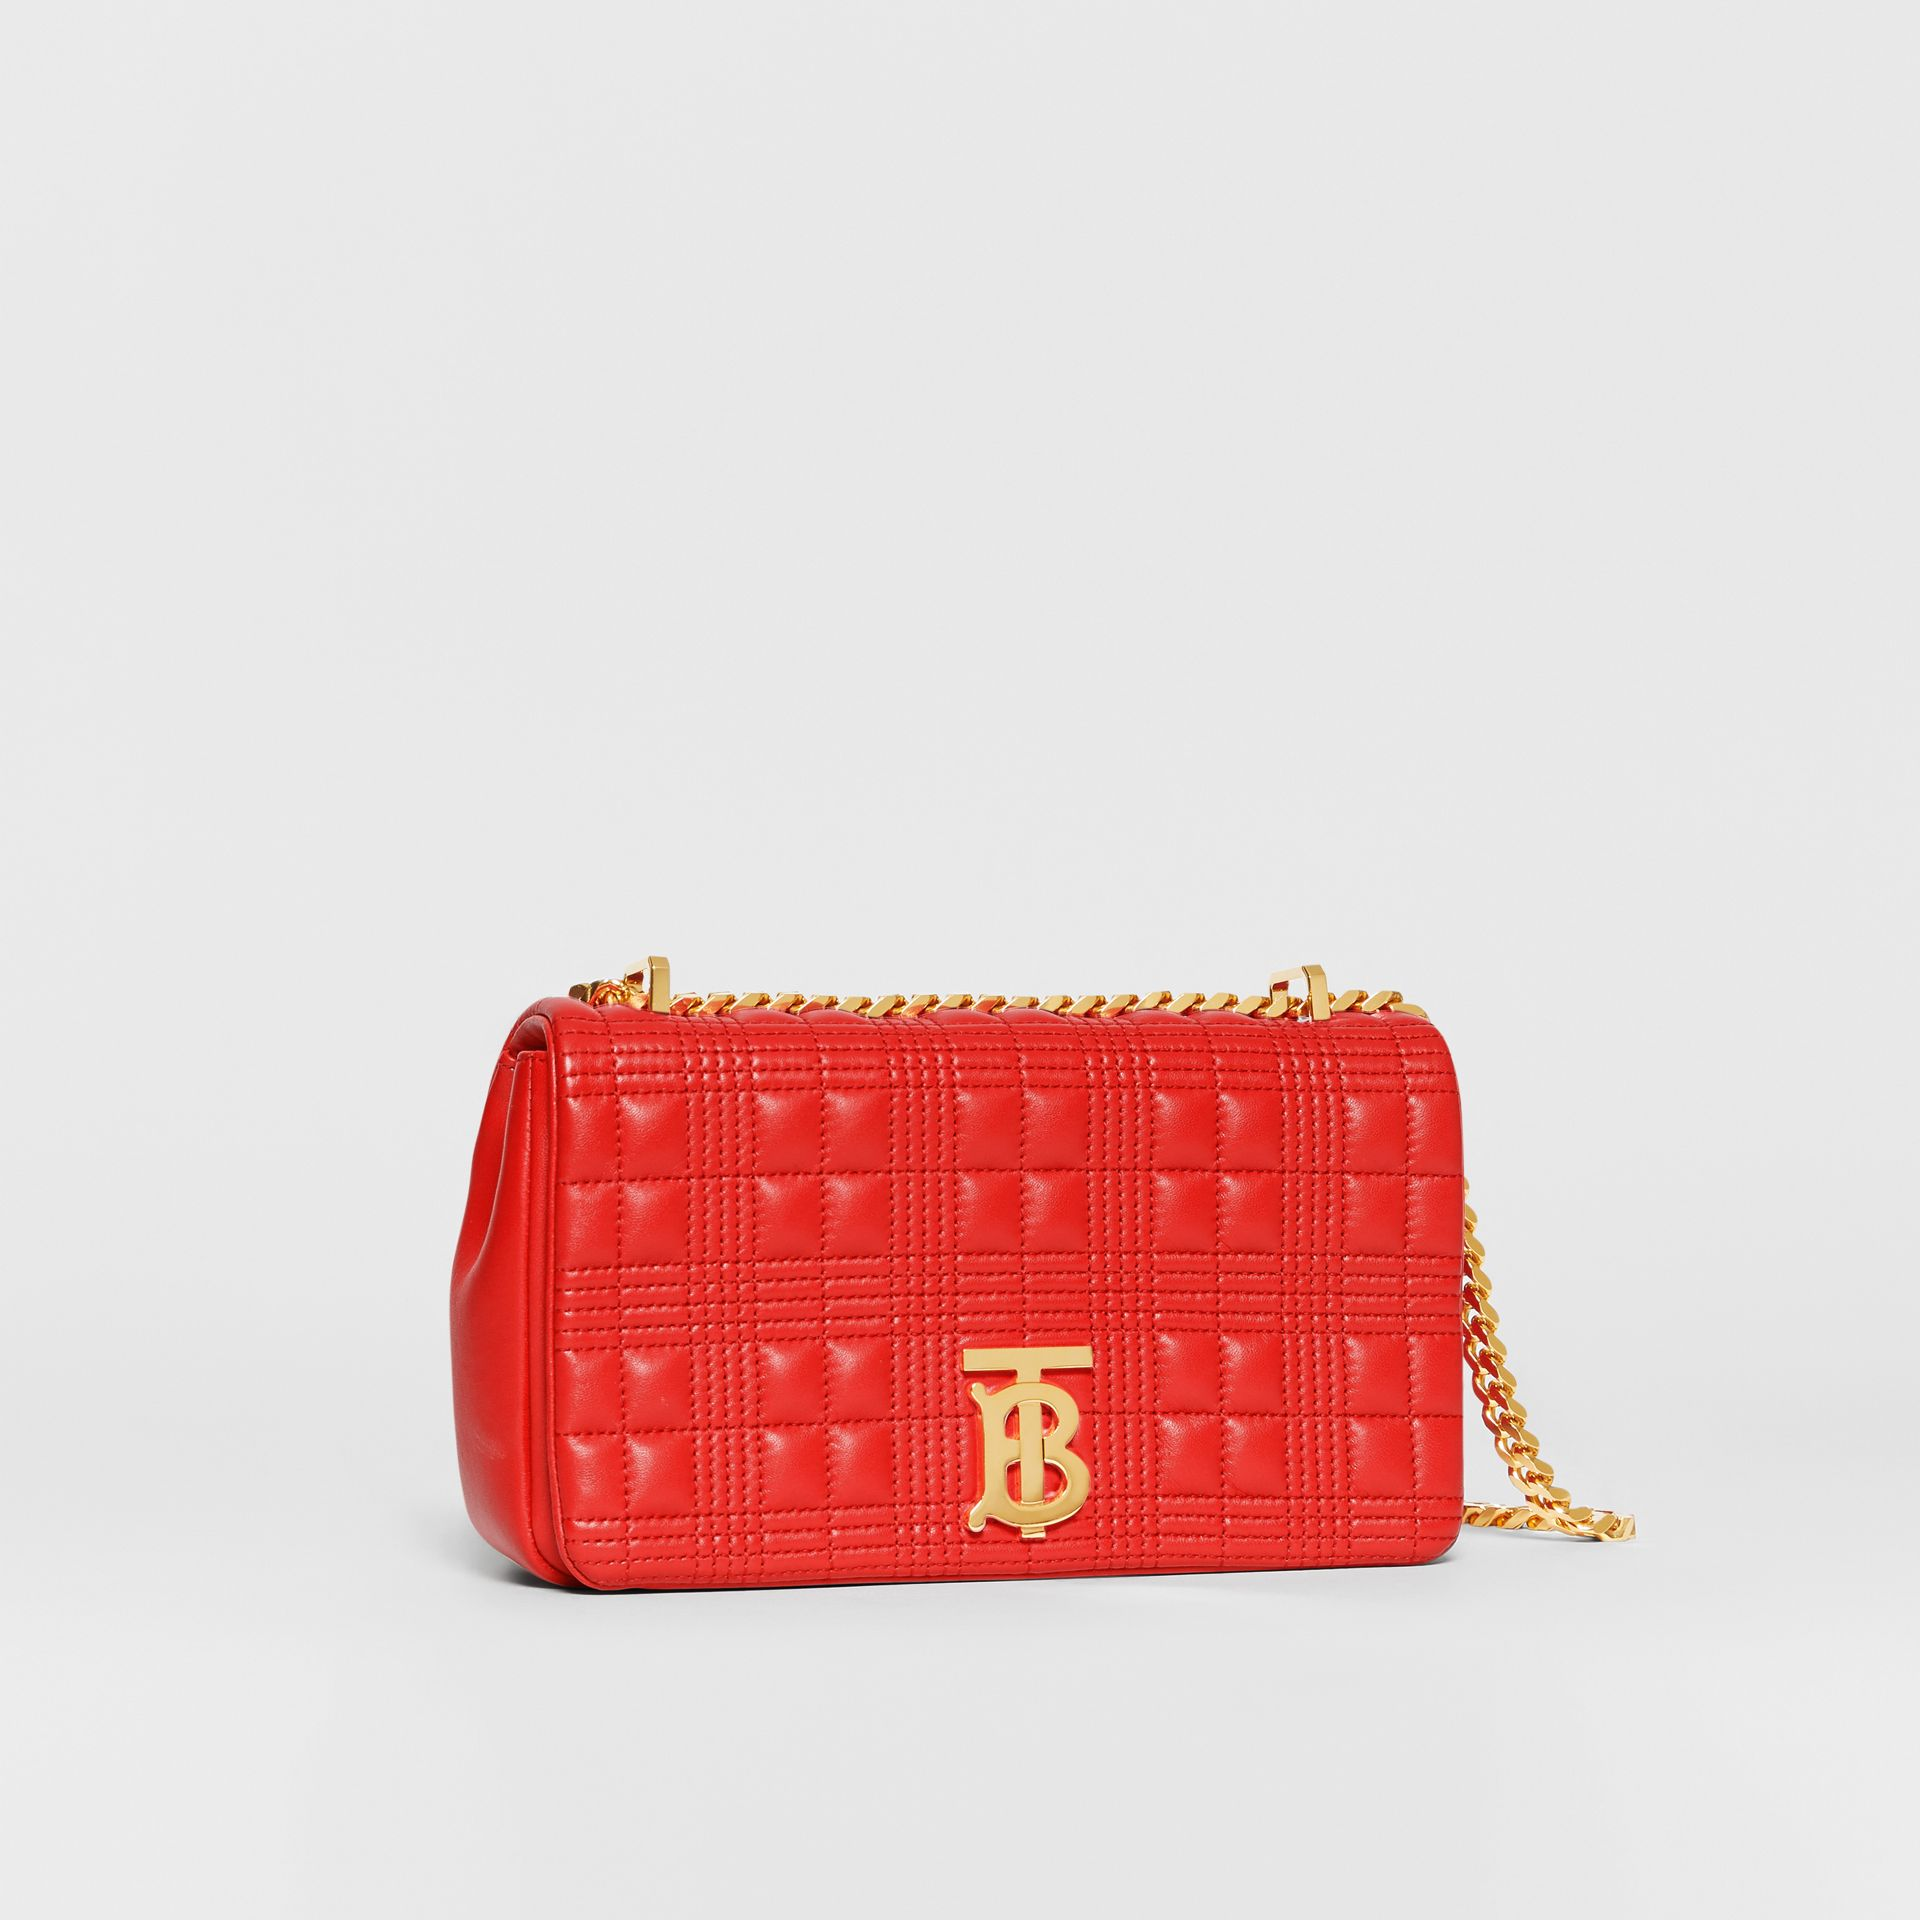 Small Quilted Lambskin Lola Bag in Bright Red - Women | Burberry - gallery image 6